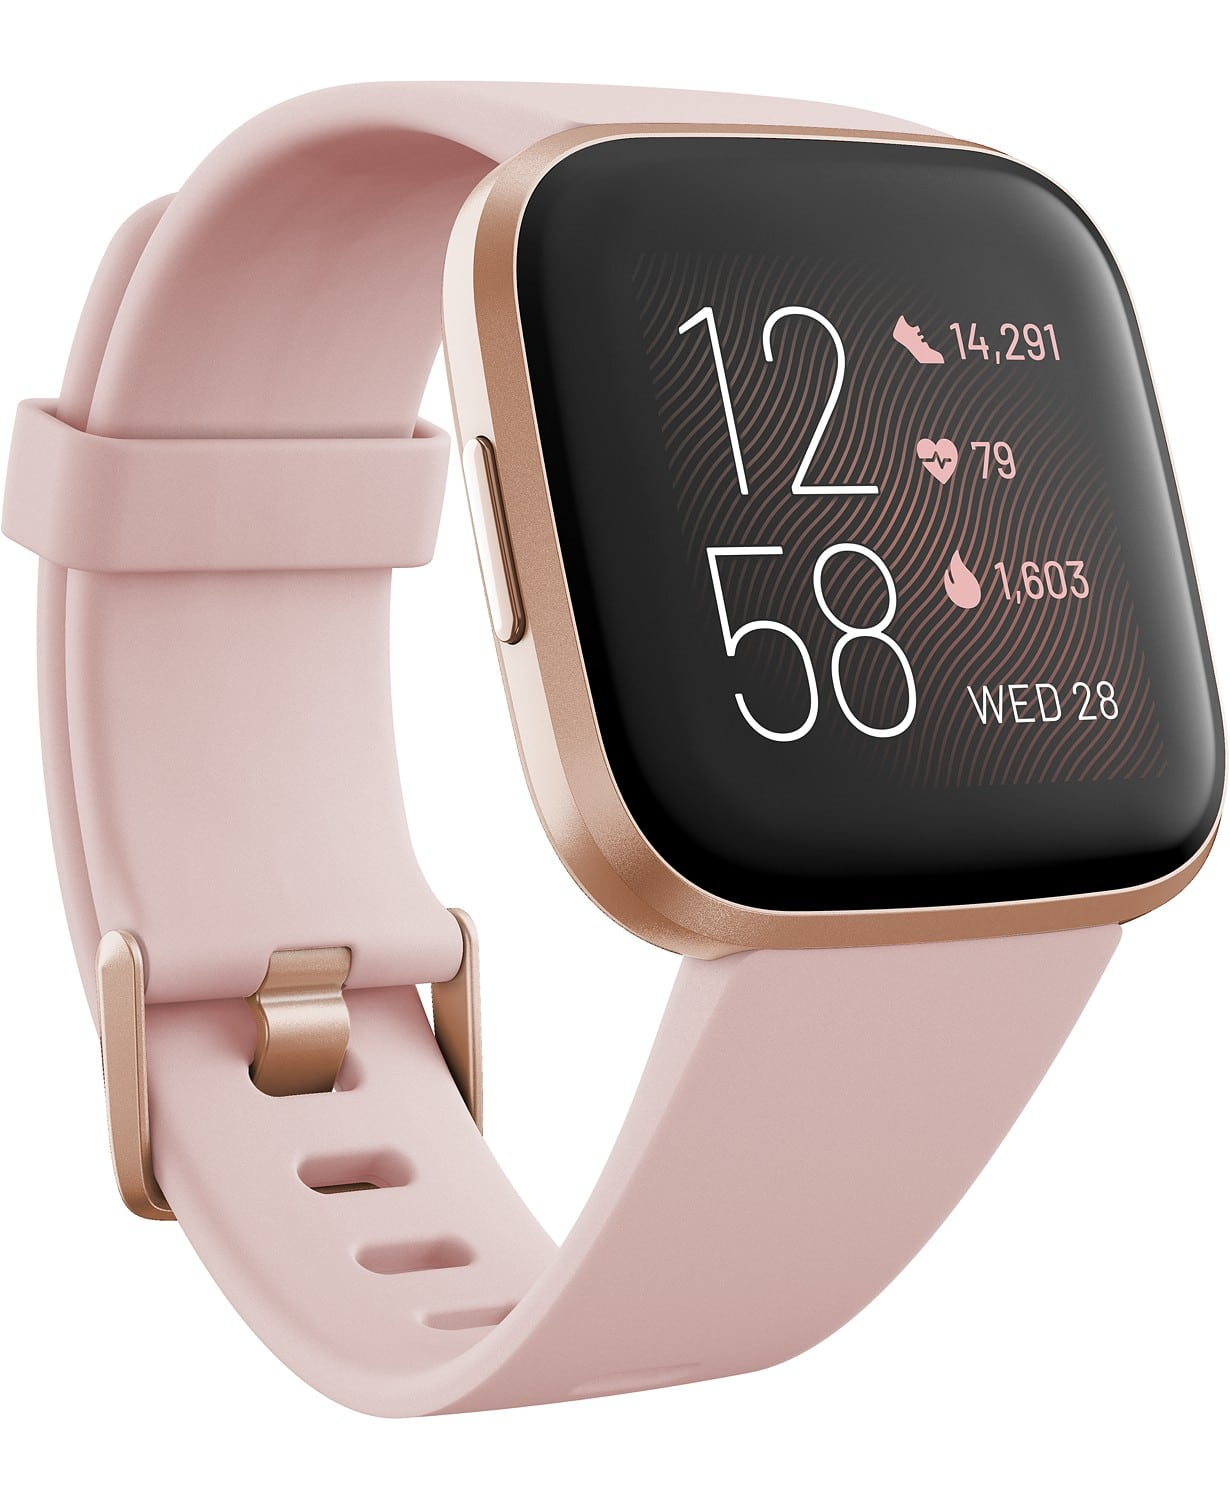 The ideal assistant and coach, this streamlined rose-colored New Versa 2 from Fitbit with Amazon Alexa Built-in is equipped with nuanced technology that gives insight to your physical wellbeing while offering seamless connectivity and convenience.